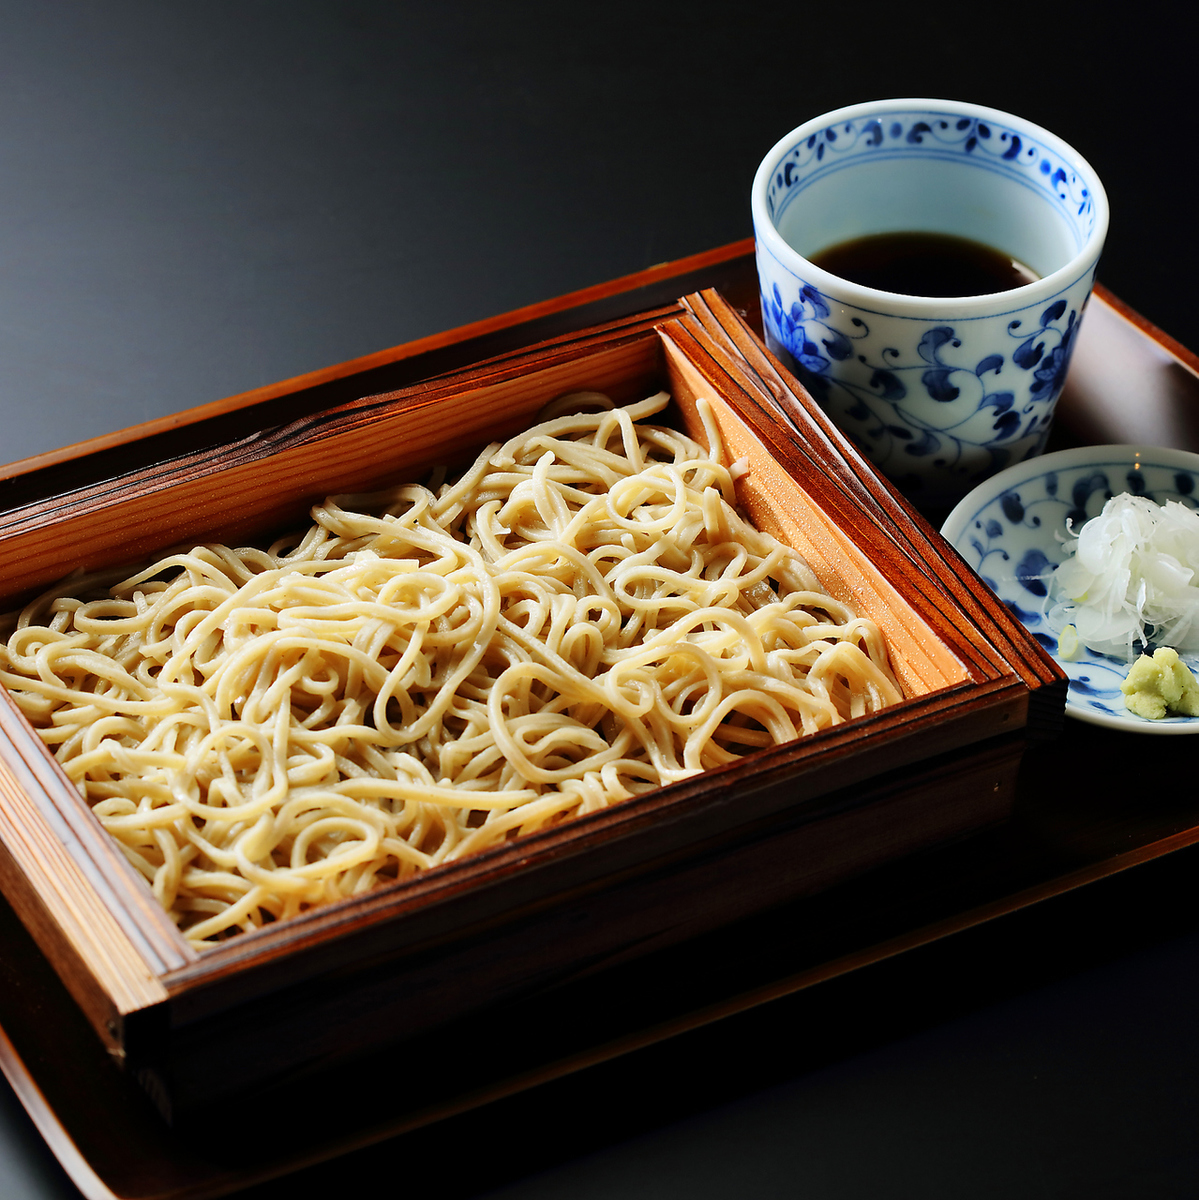 Buckwheat flour made in Hokkaido is used! Home-made soba with buckwheat flakes of 10%!